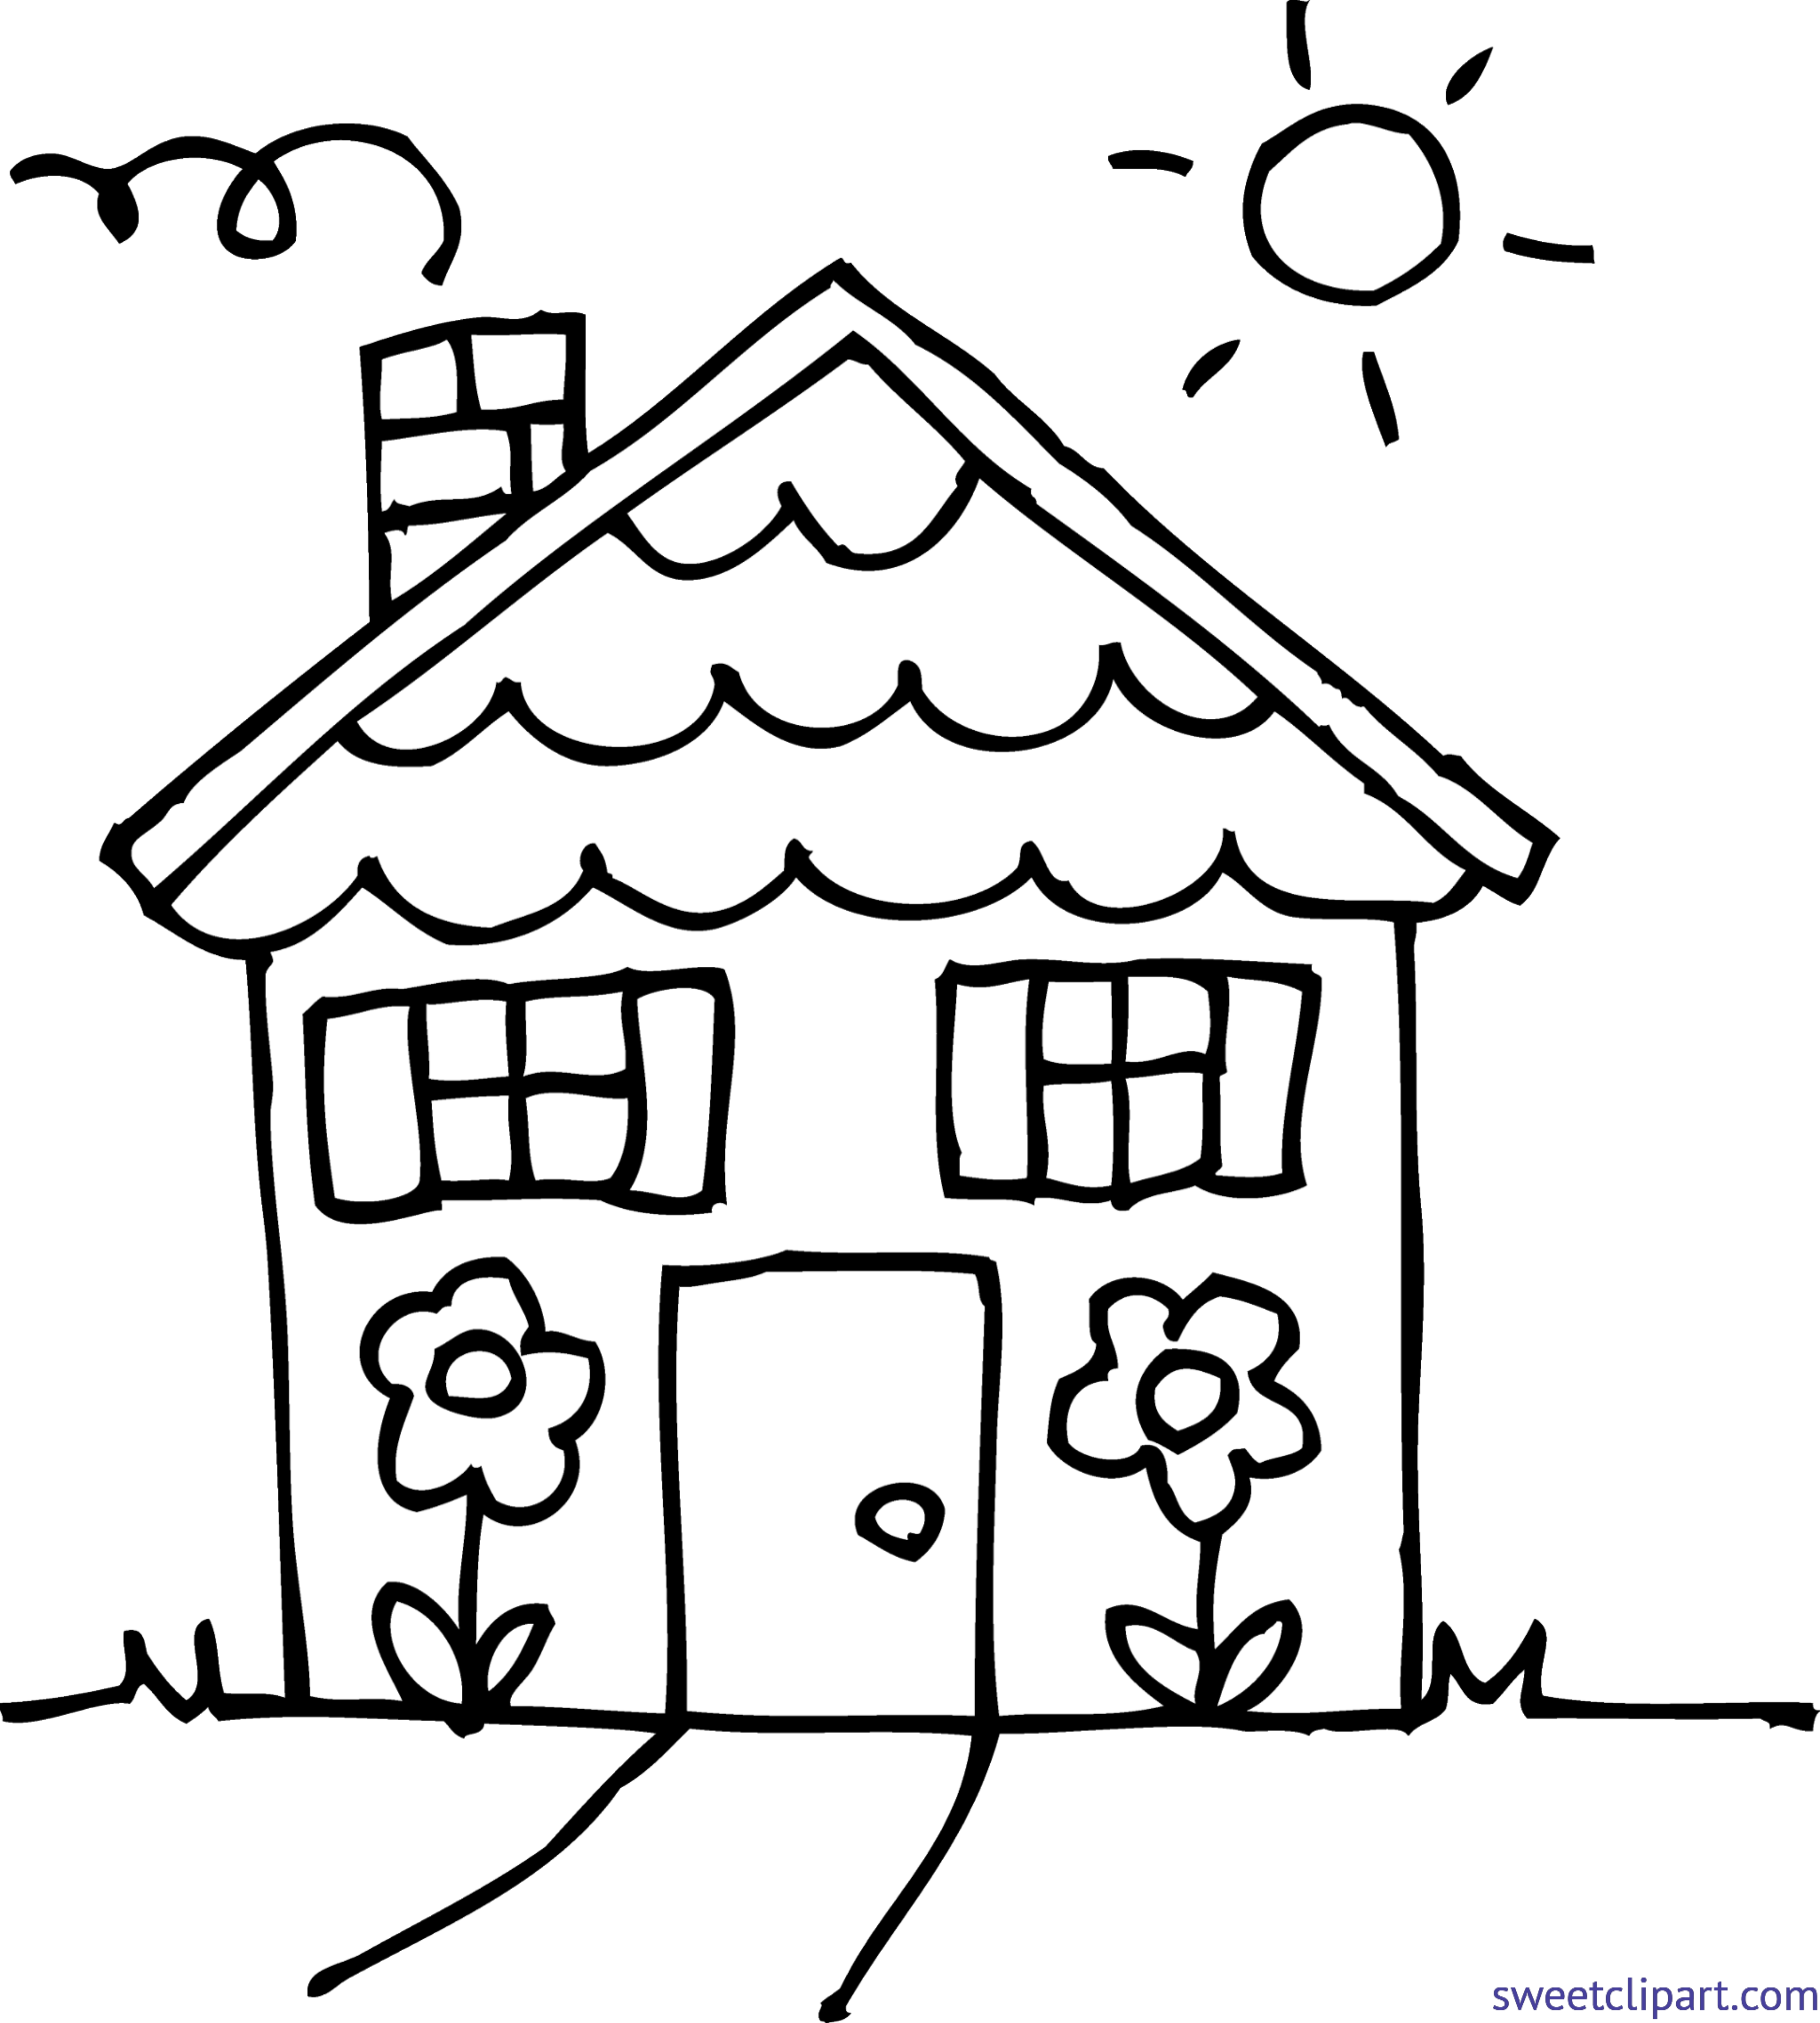 Inside house clipart black and white image download House Line Drawing Clip Art at GetDrawings.com | Free for personal ... image download